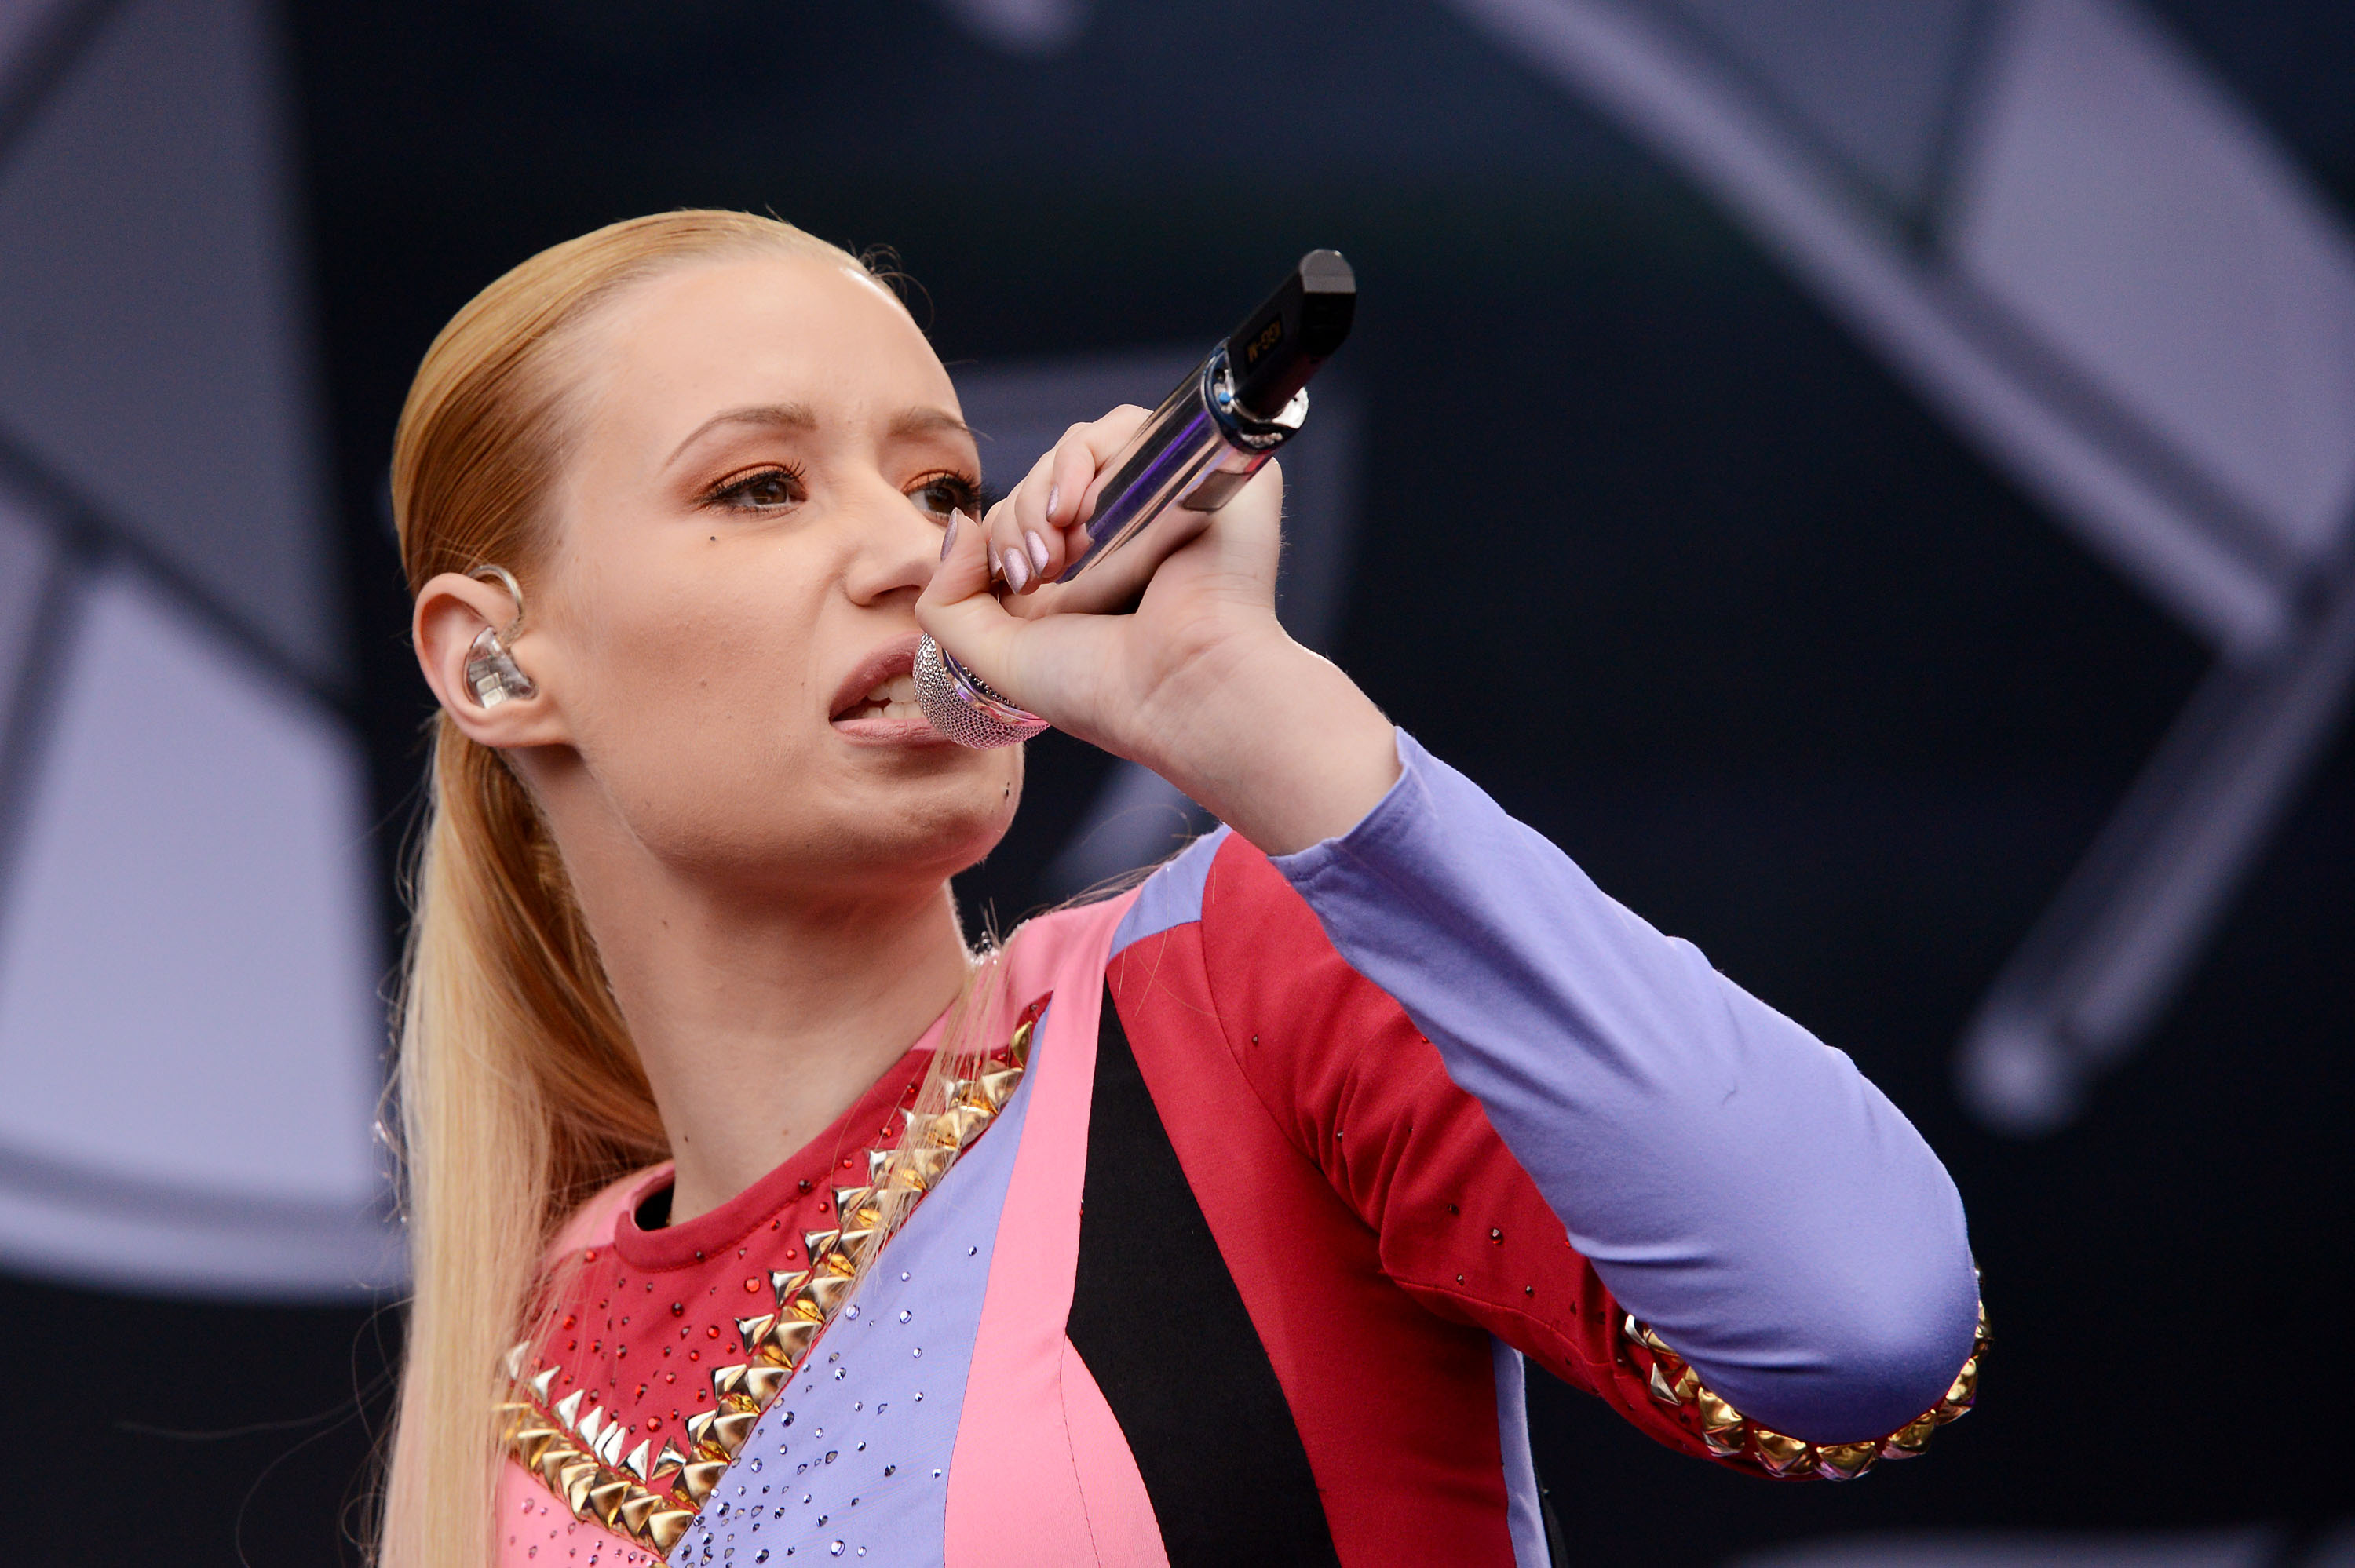 AUSTIN, TX - OCTOBER 11:  Iggy Azalea performs during the 2014 Austin City Limits Music Festival at Zilker Park on October 11, 2014 in Austin, Texas.  (Photo by C Flanigan/Getty Images)